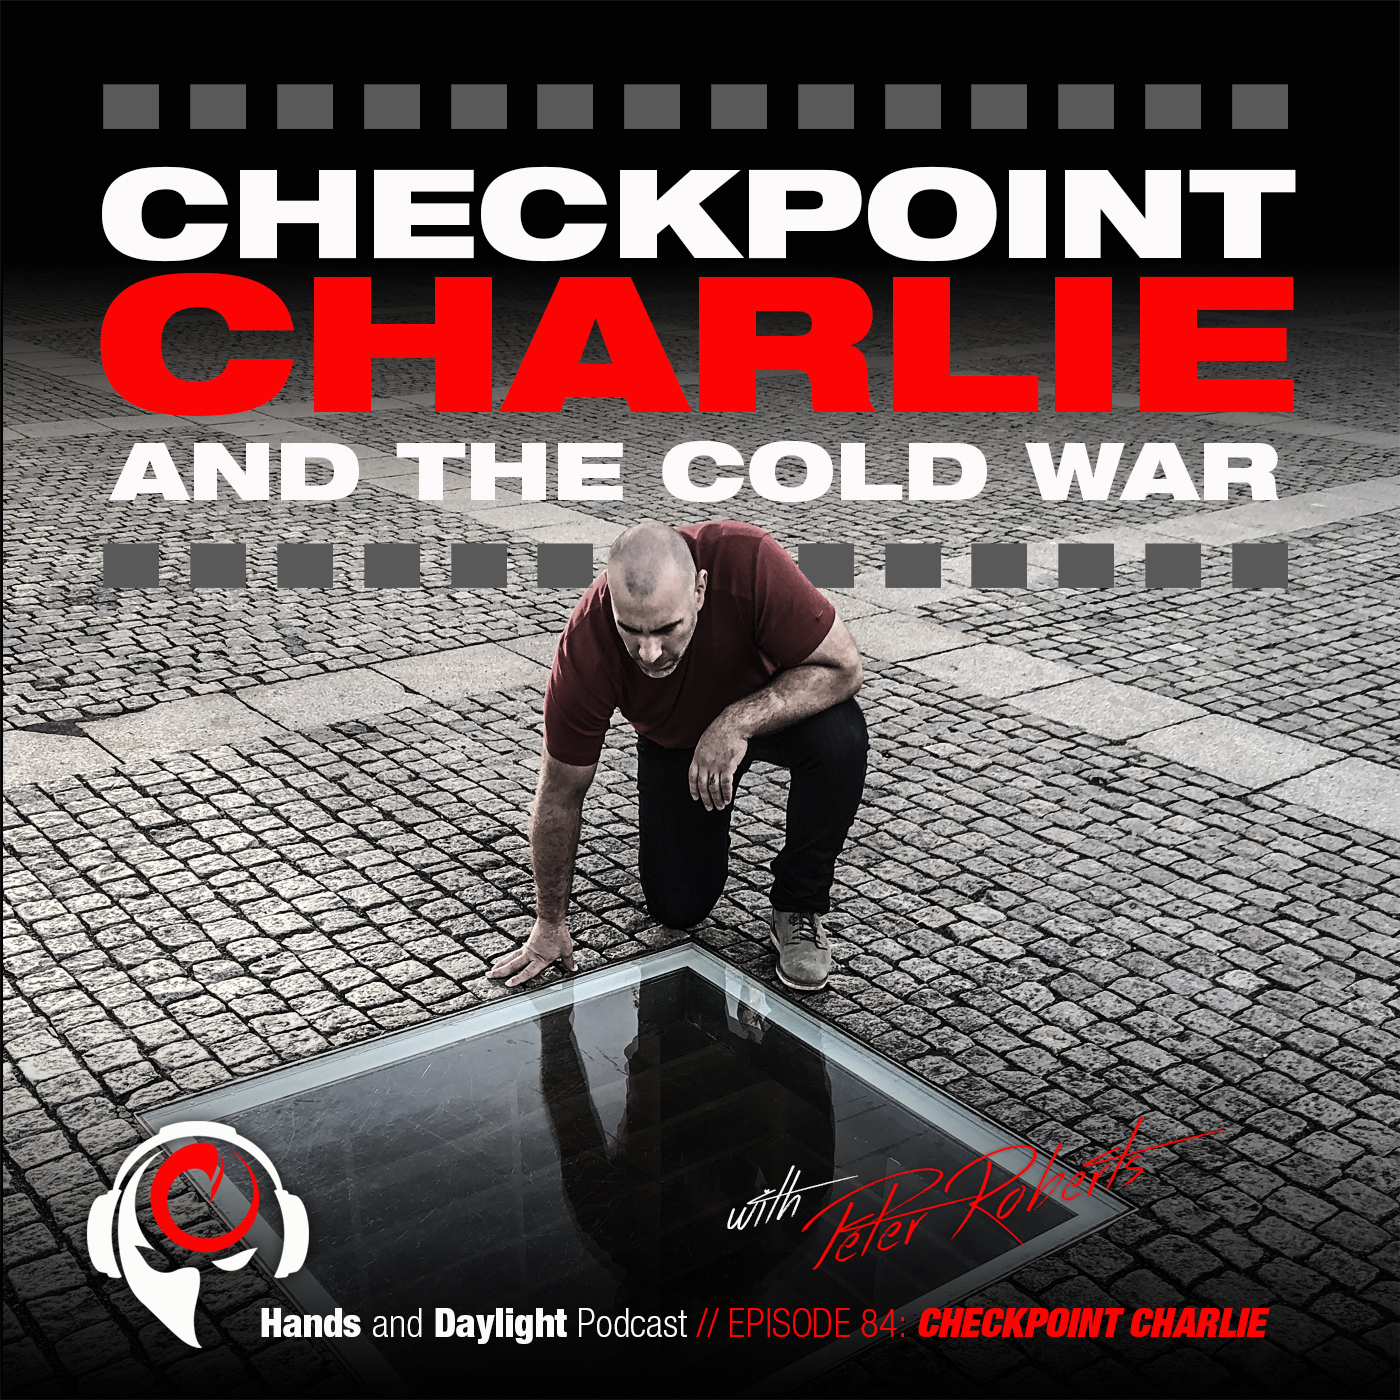 E84: CHECKPOINT CHARLIE AND THE COLD WAR